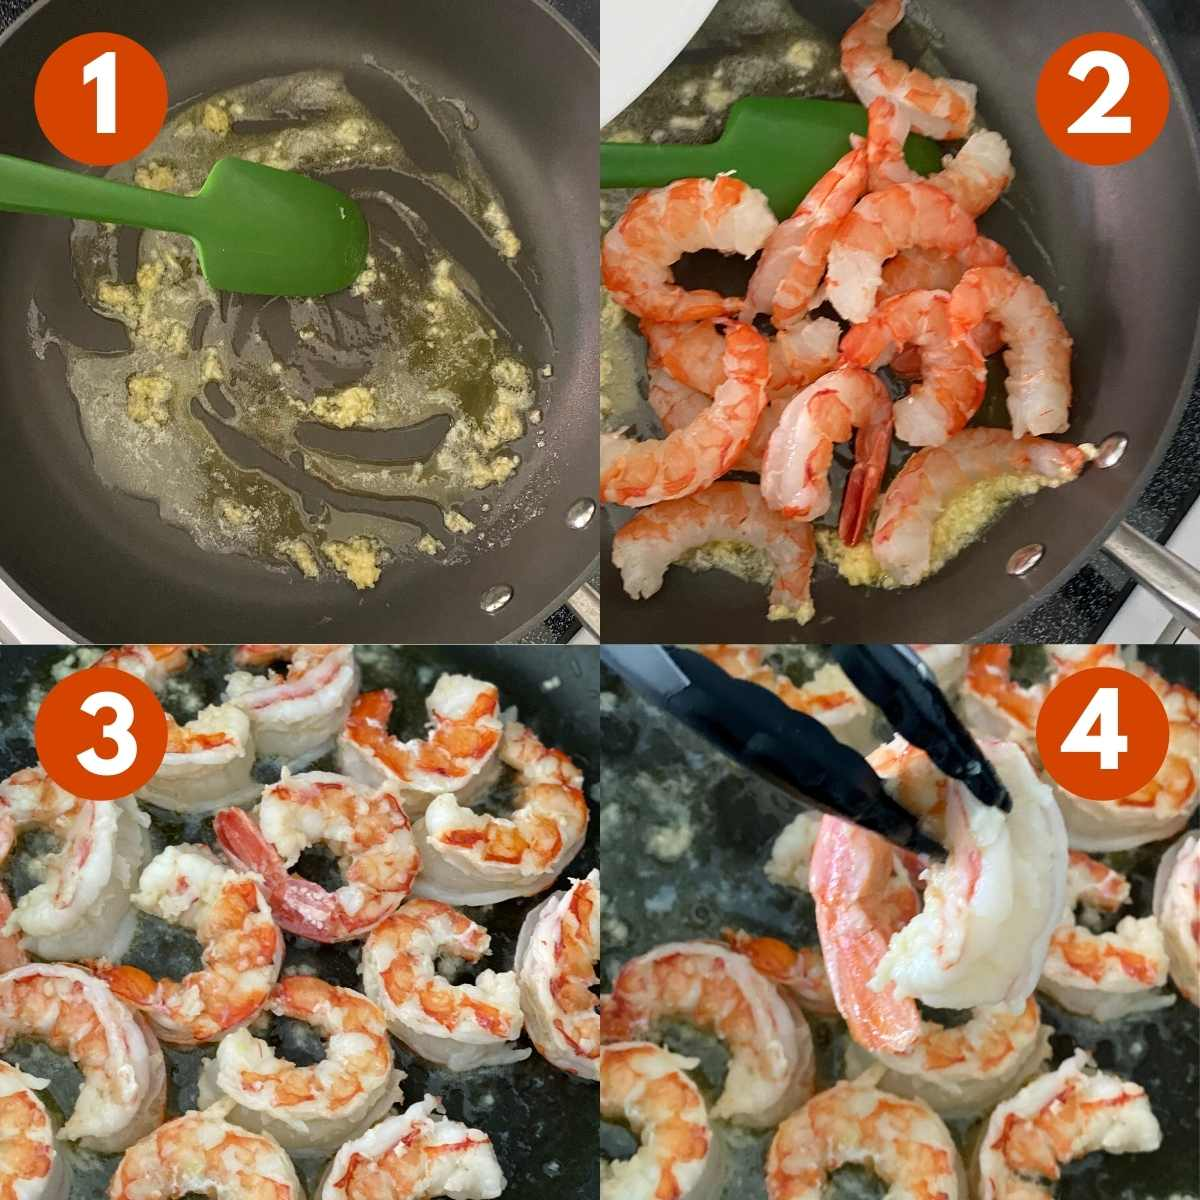 Numbered picture collage of steps to cook Patagonian King Prawn.